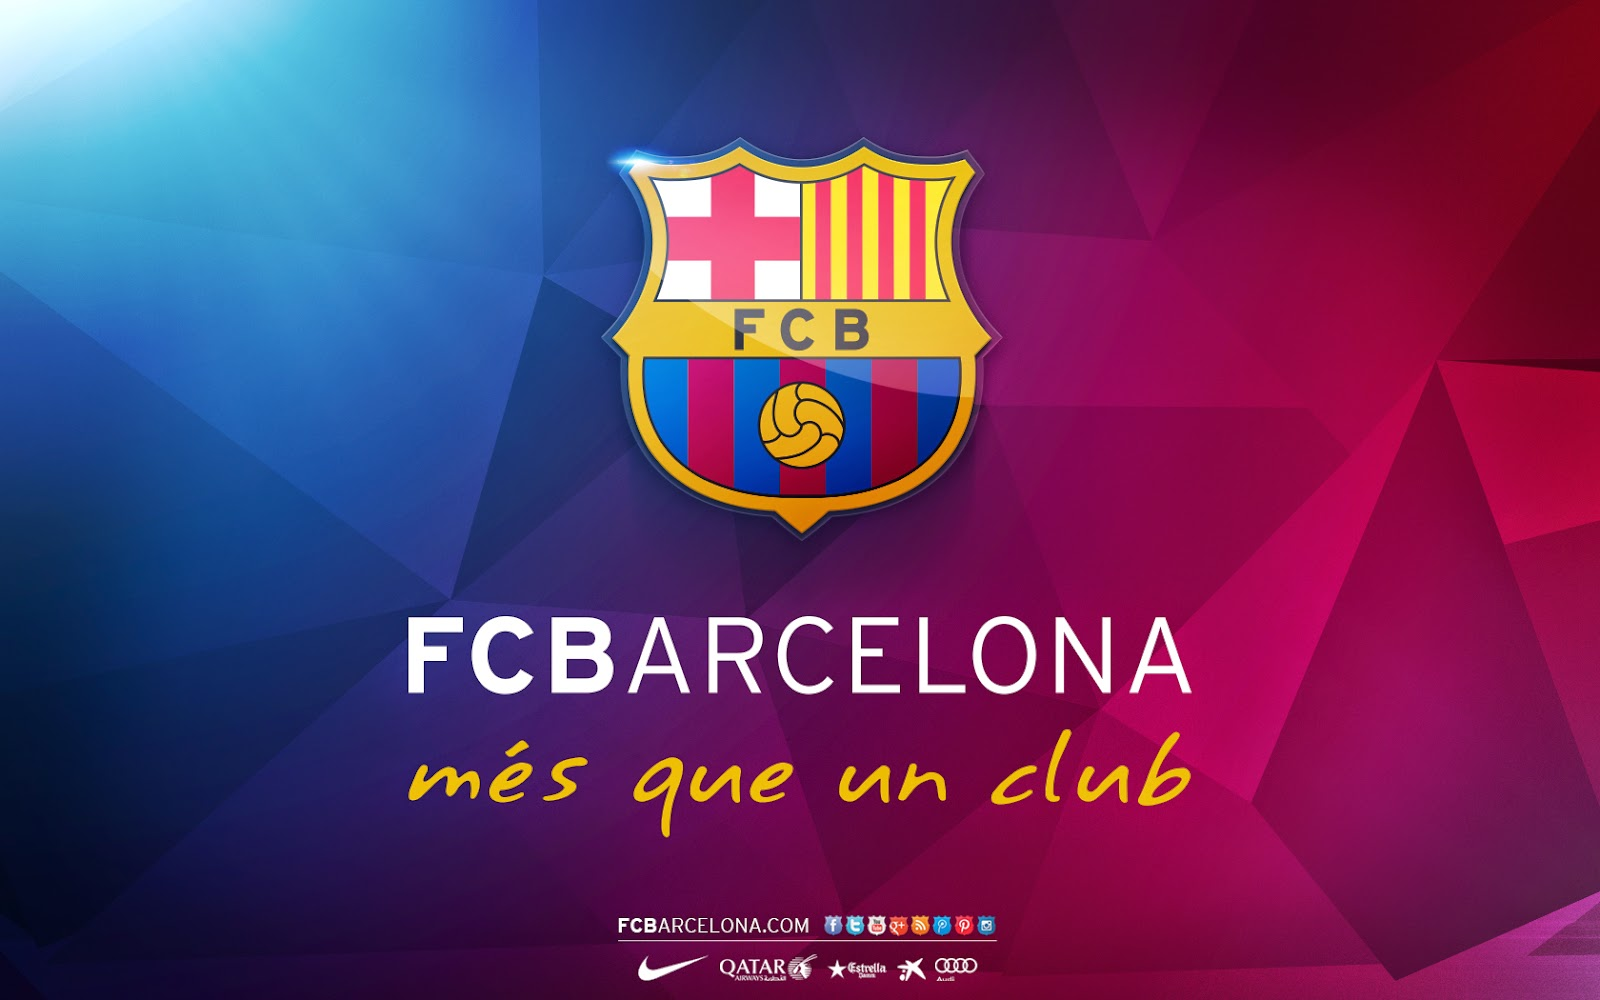 Football Wallpapers Hd For Android Barcelona Football Club Wallpaper Football Wallpaper Hd